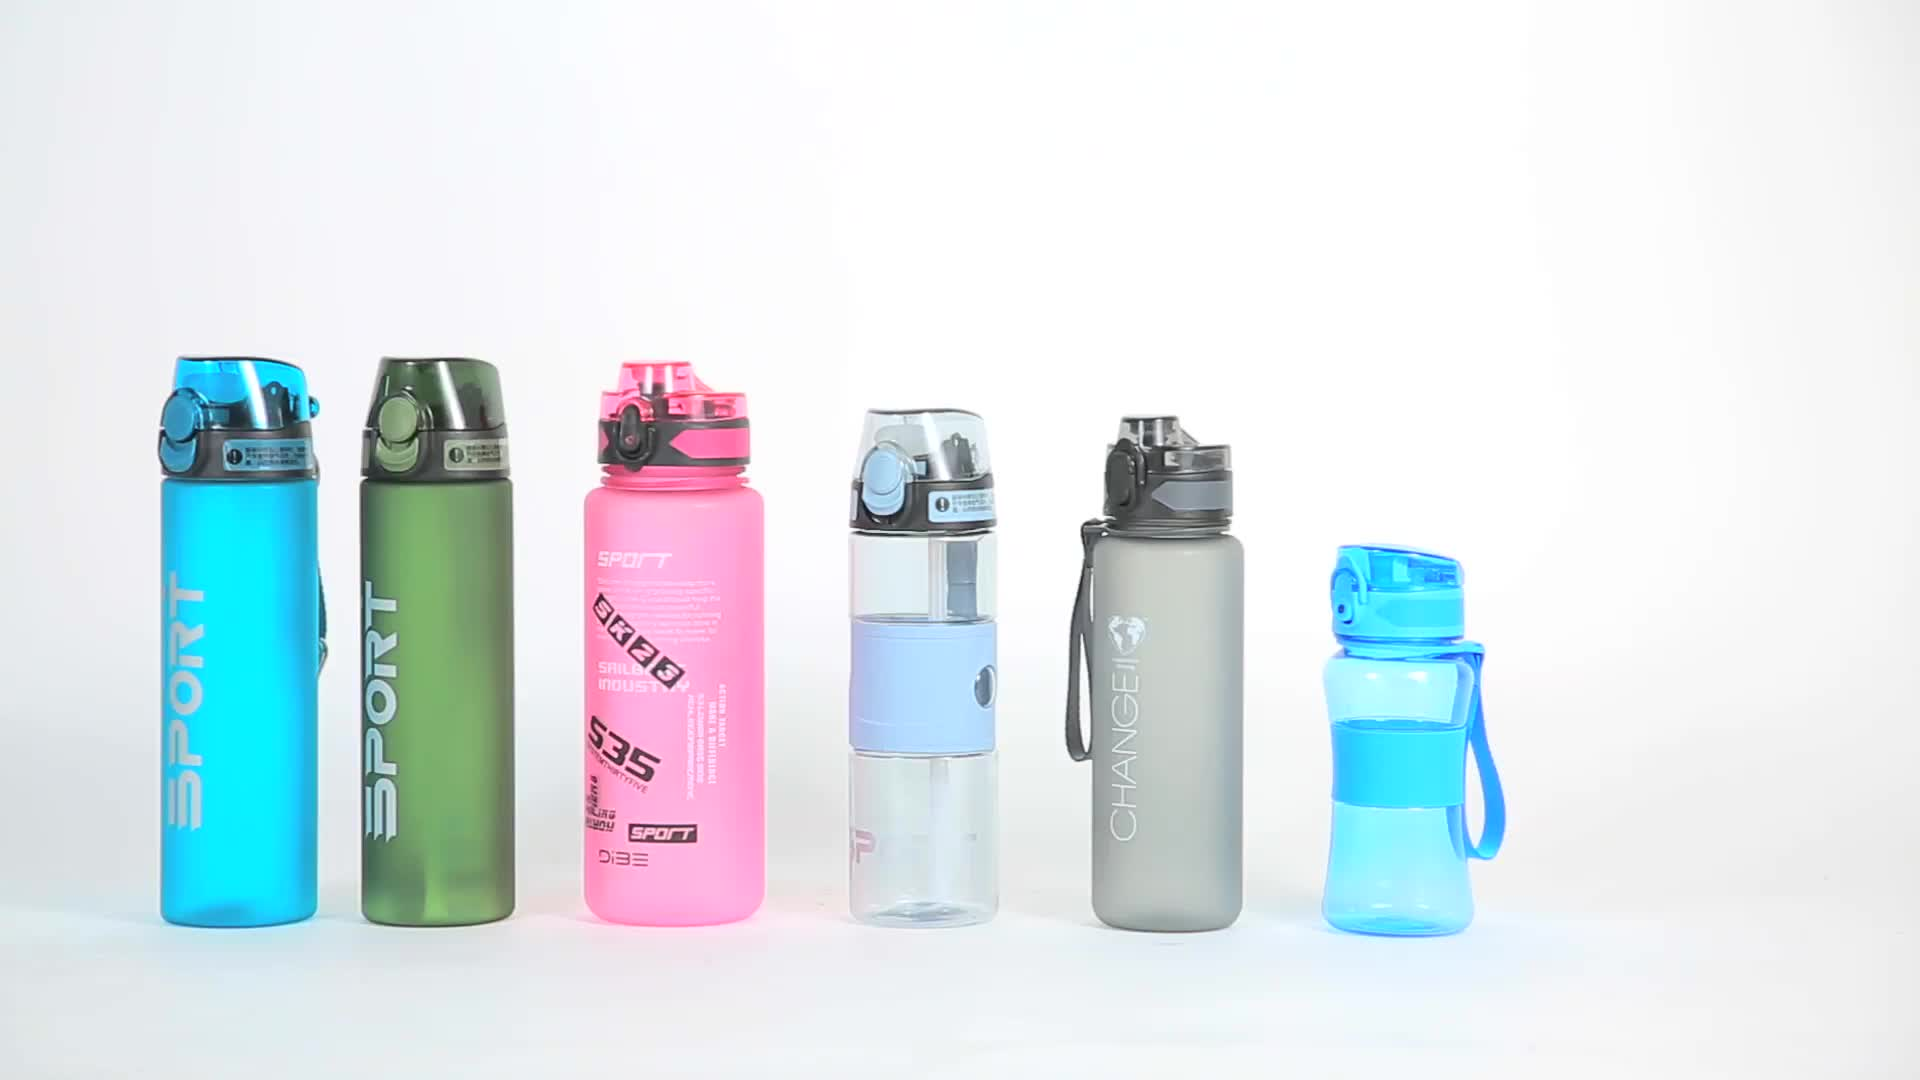 1000ml High Quality Leak Proof Bpa Free New Eco friendly Filp Top Water Filtration Sports Plastic Water Bottles